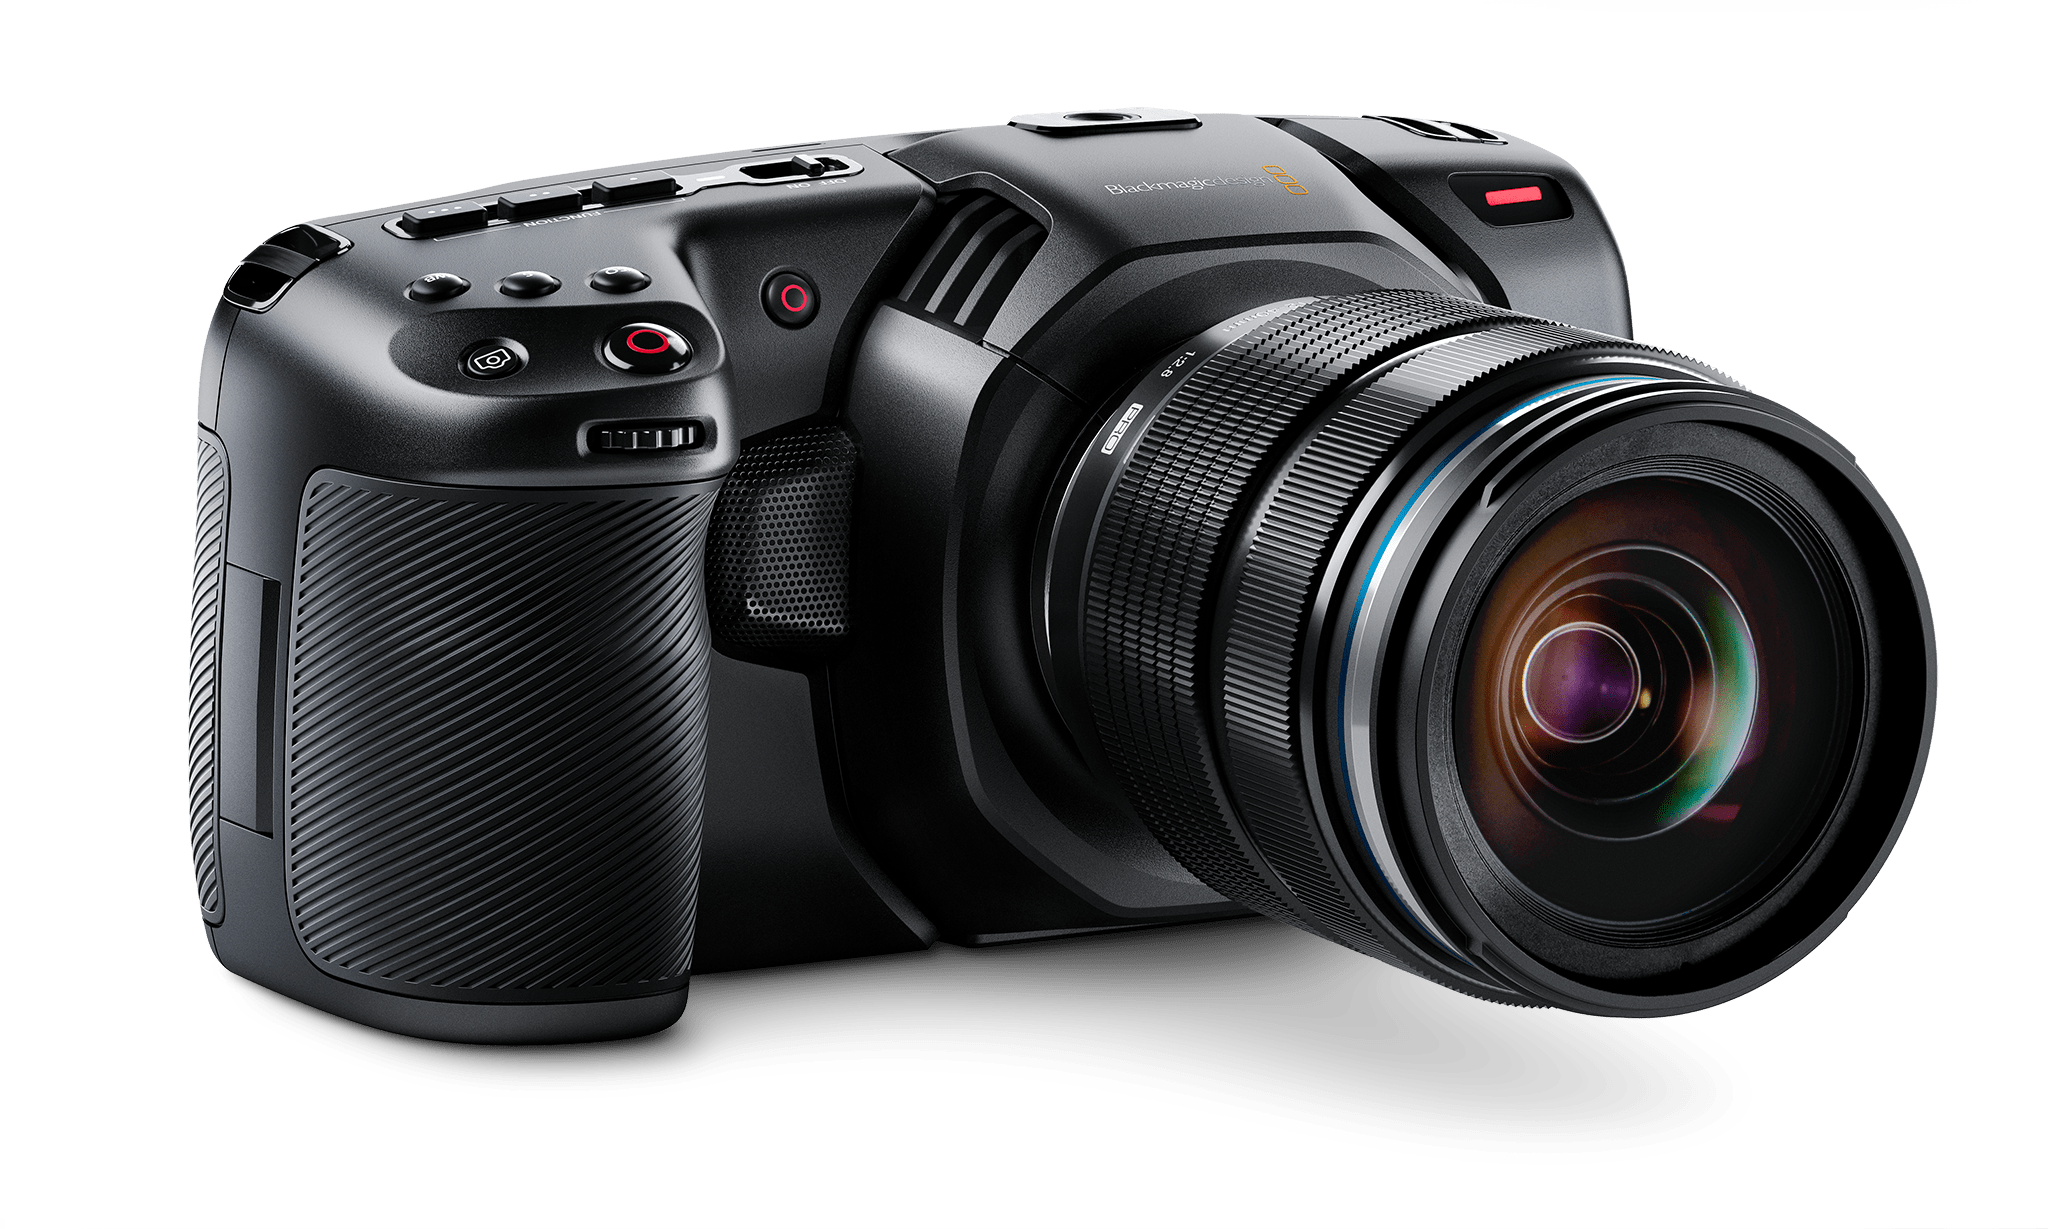 Bald verfügbar: Blackmagic Pocket Cinema Camera 4K